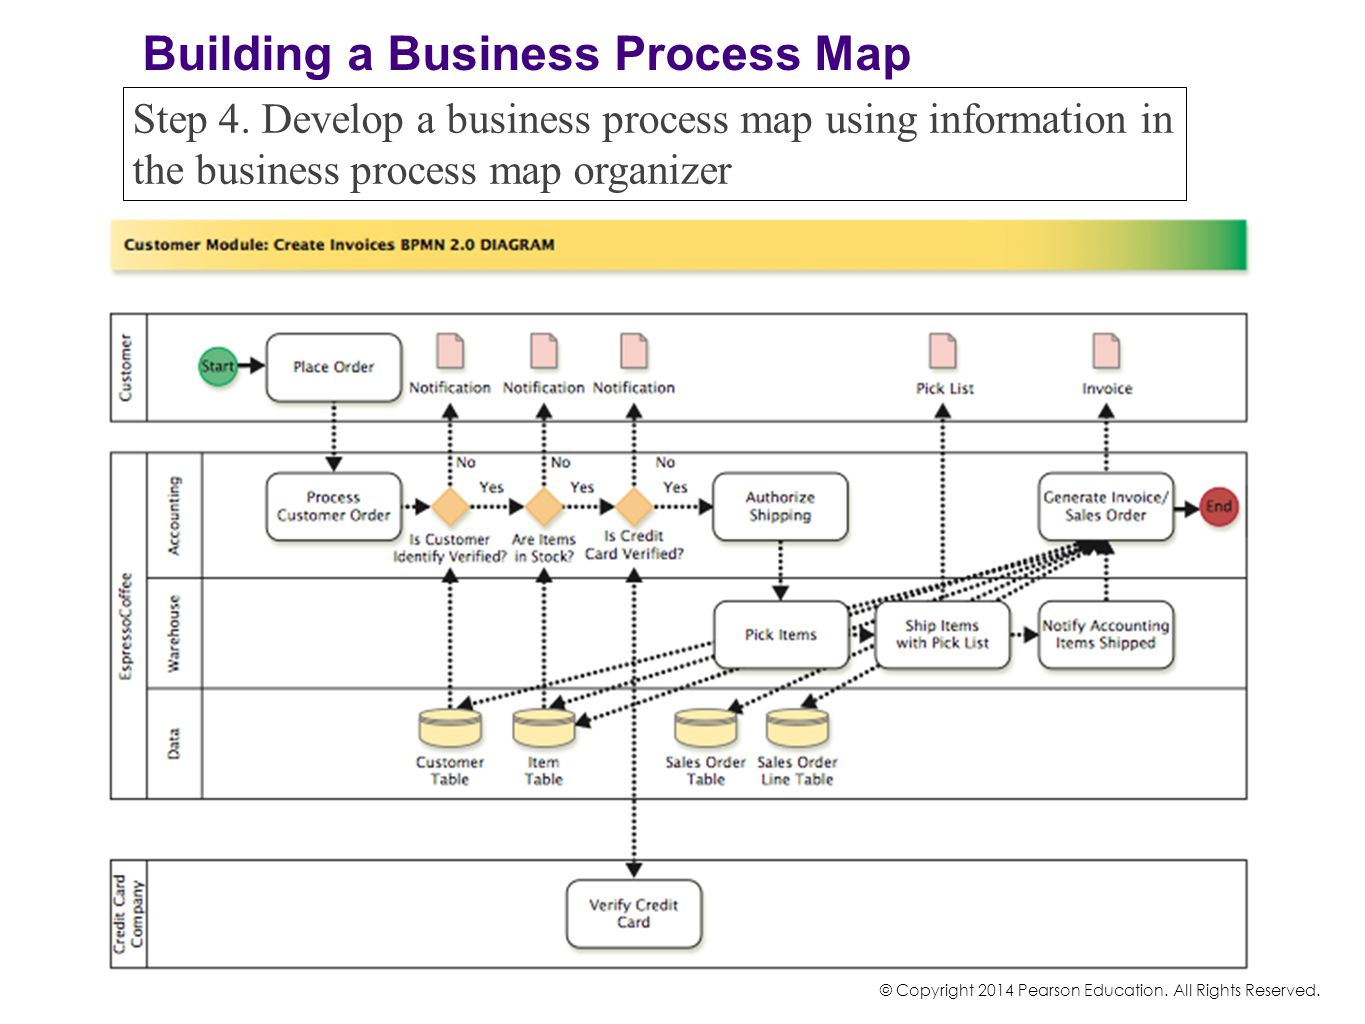 Building a Business Process Map